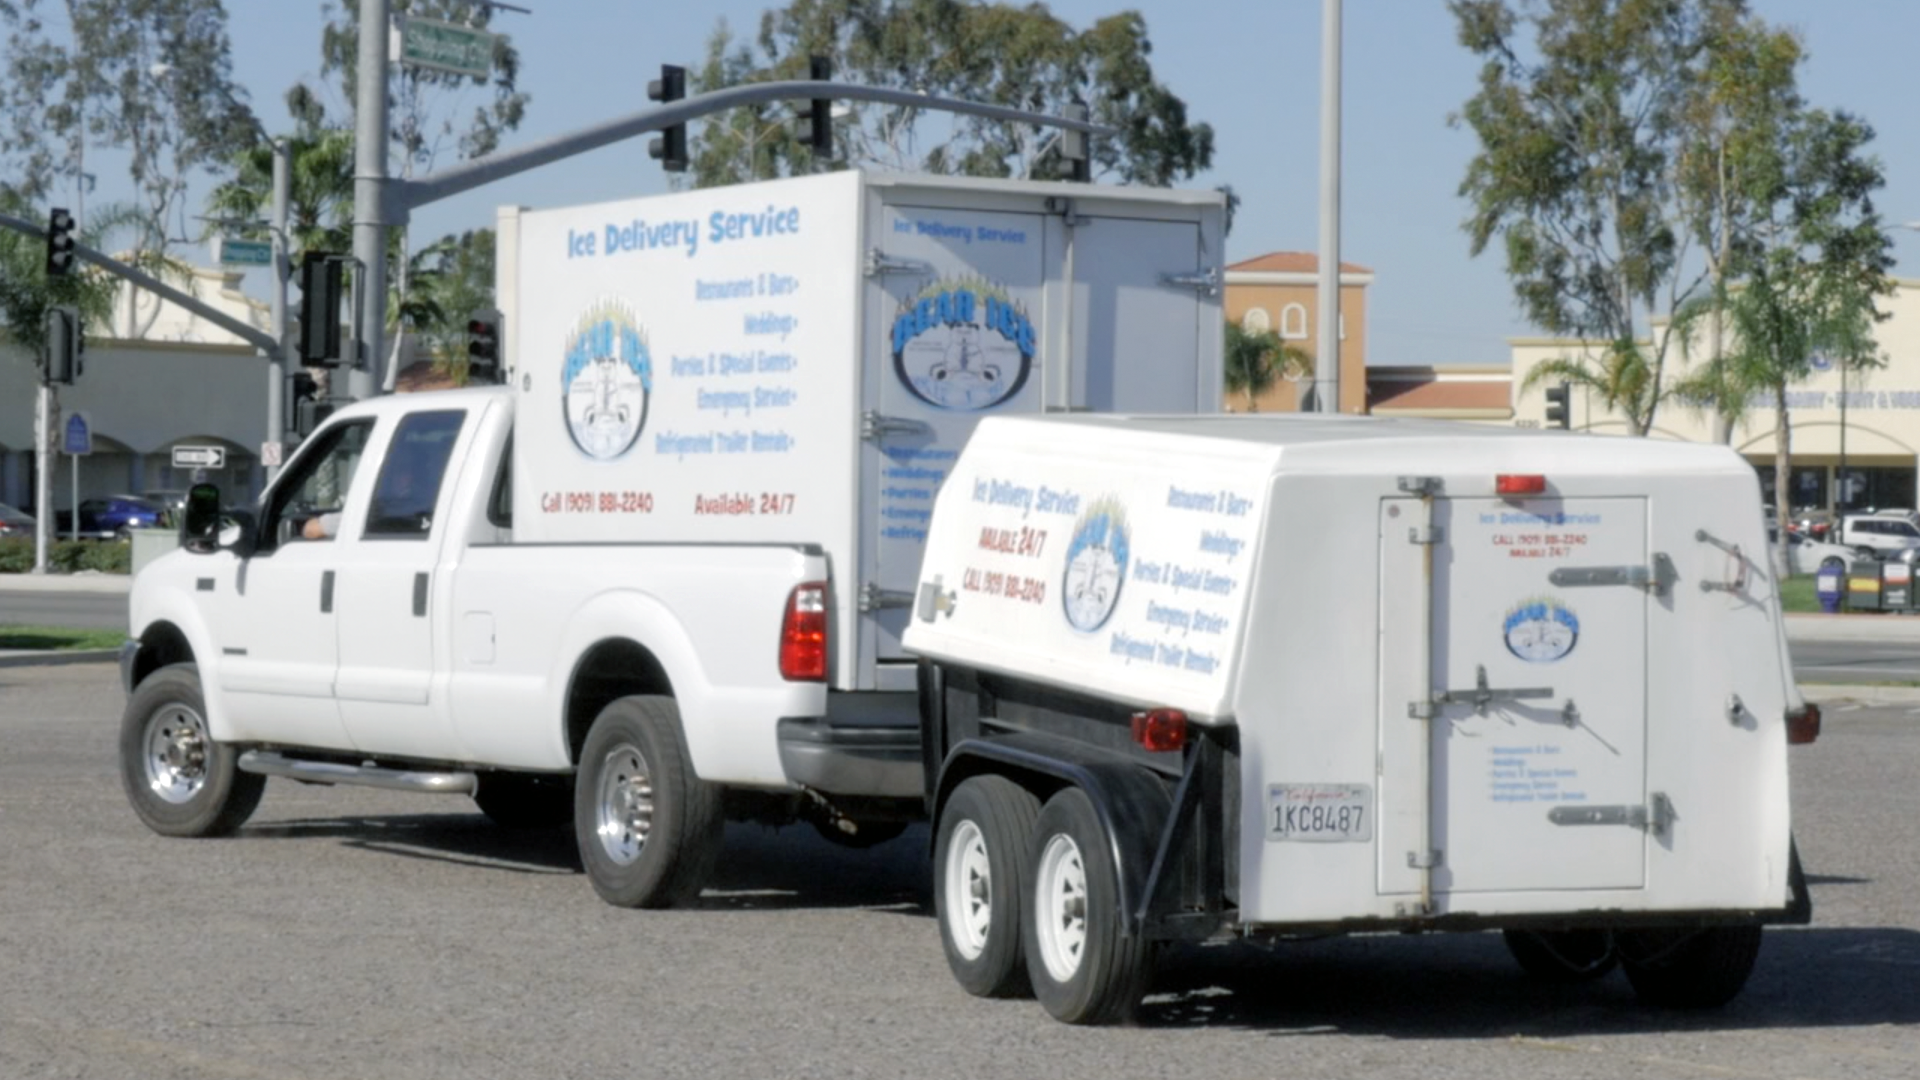 Bear Ice delivery service truck with a refrigerated container hauling a refrigerated trailer